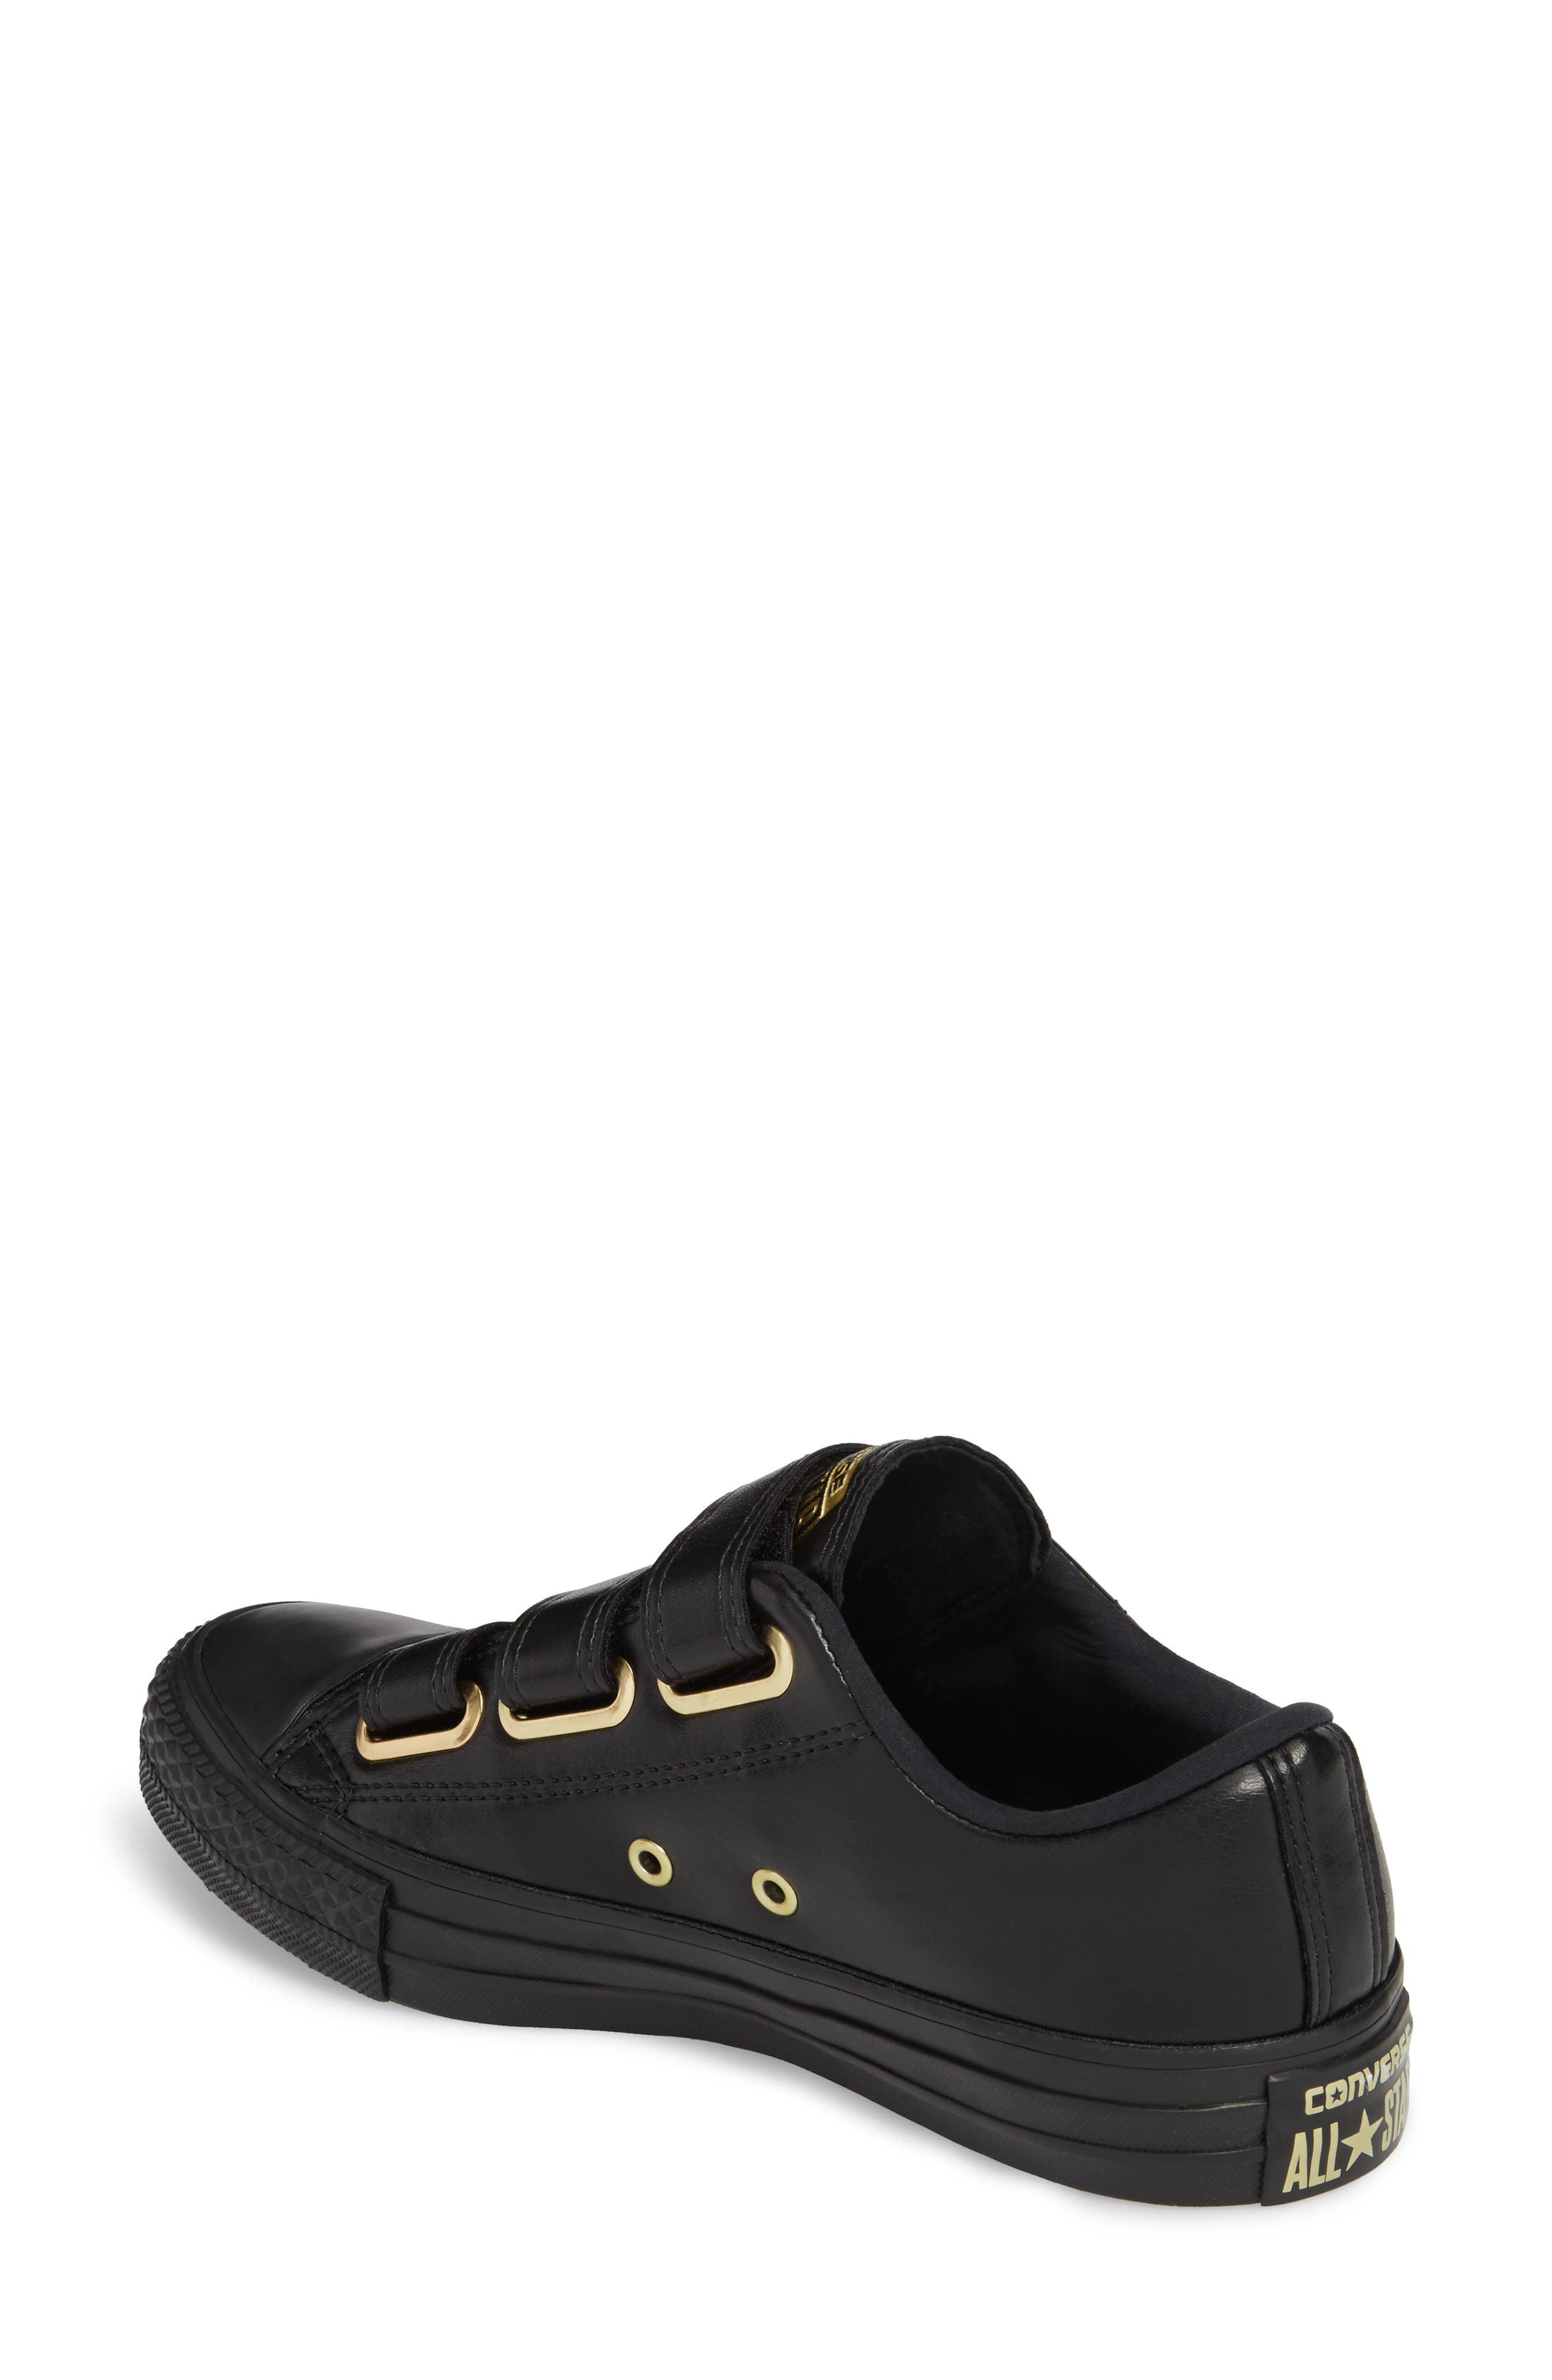 Alternate Image 2  - Converse Chuck Taylor® All Star® 3V Low Top Sneaker (Women)